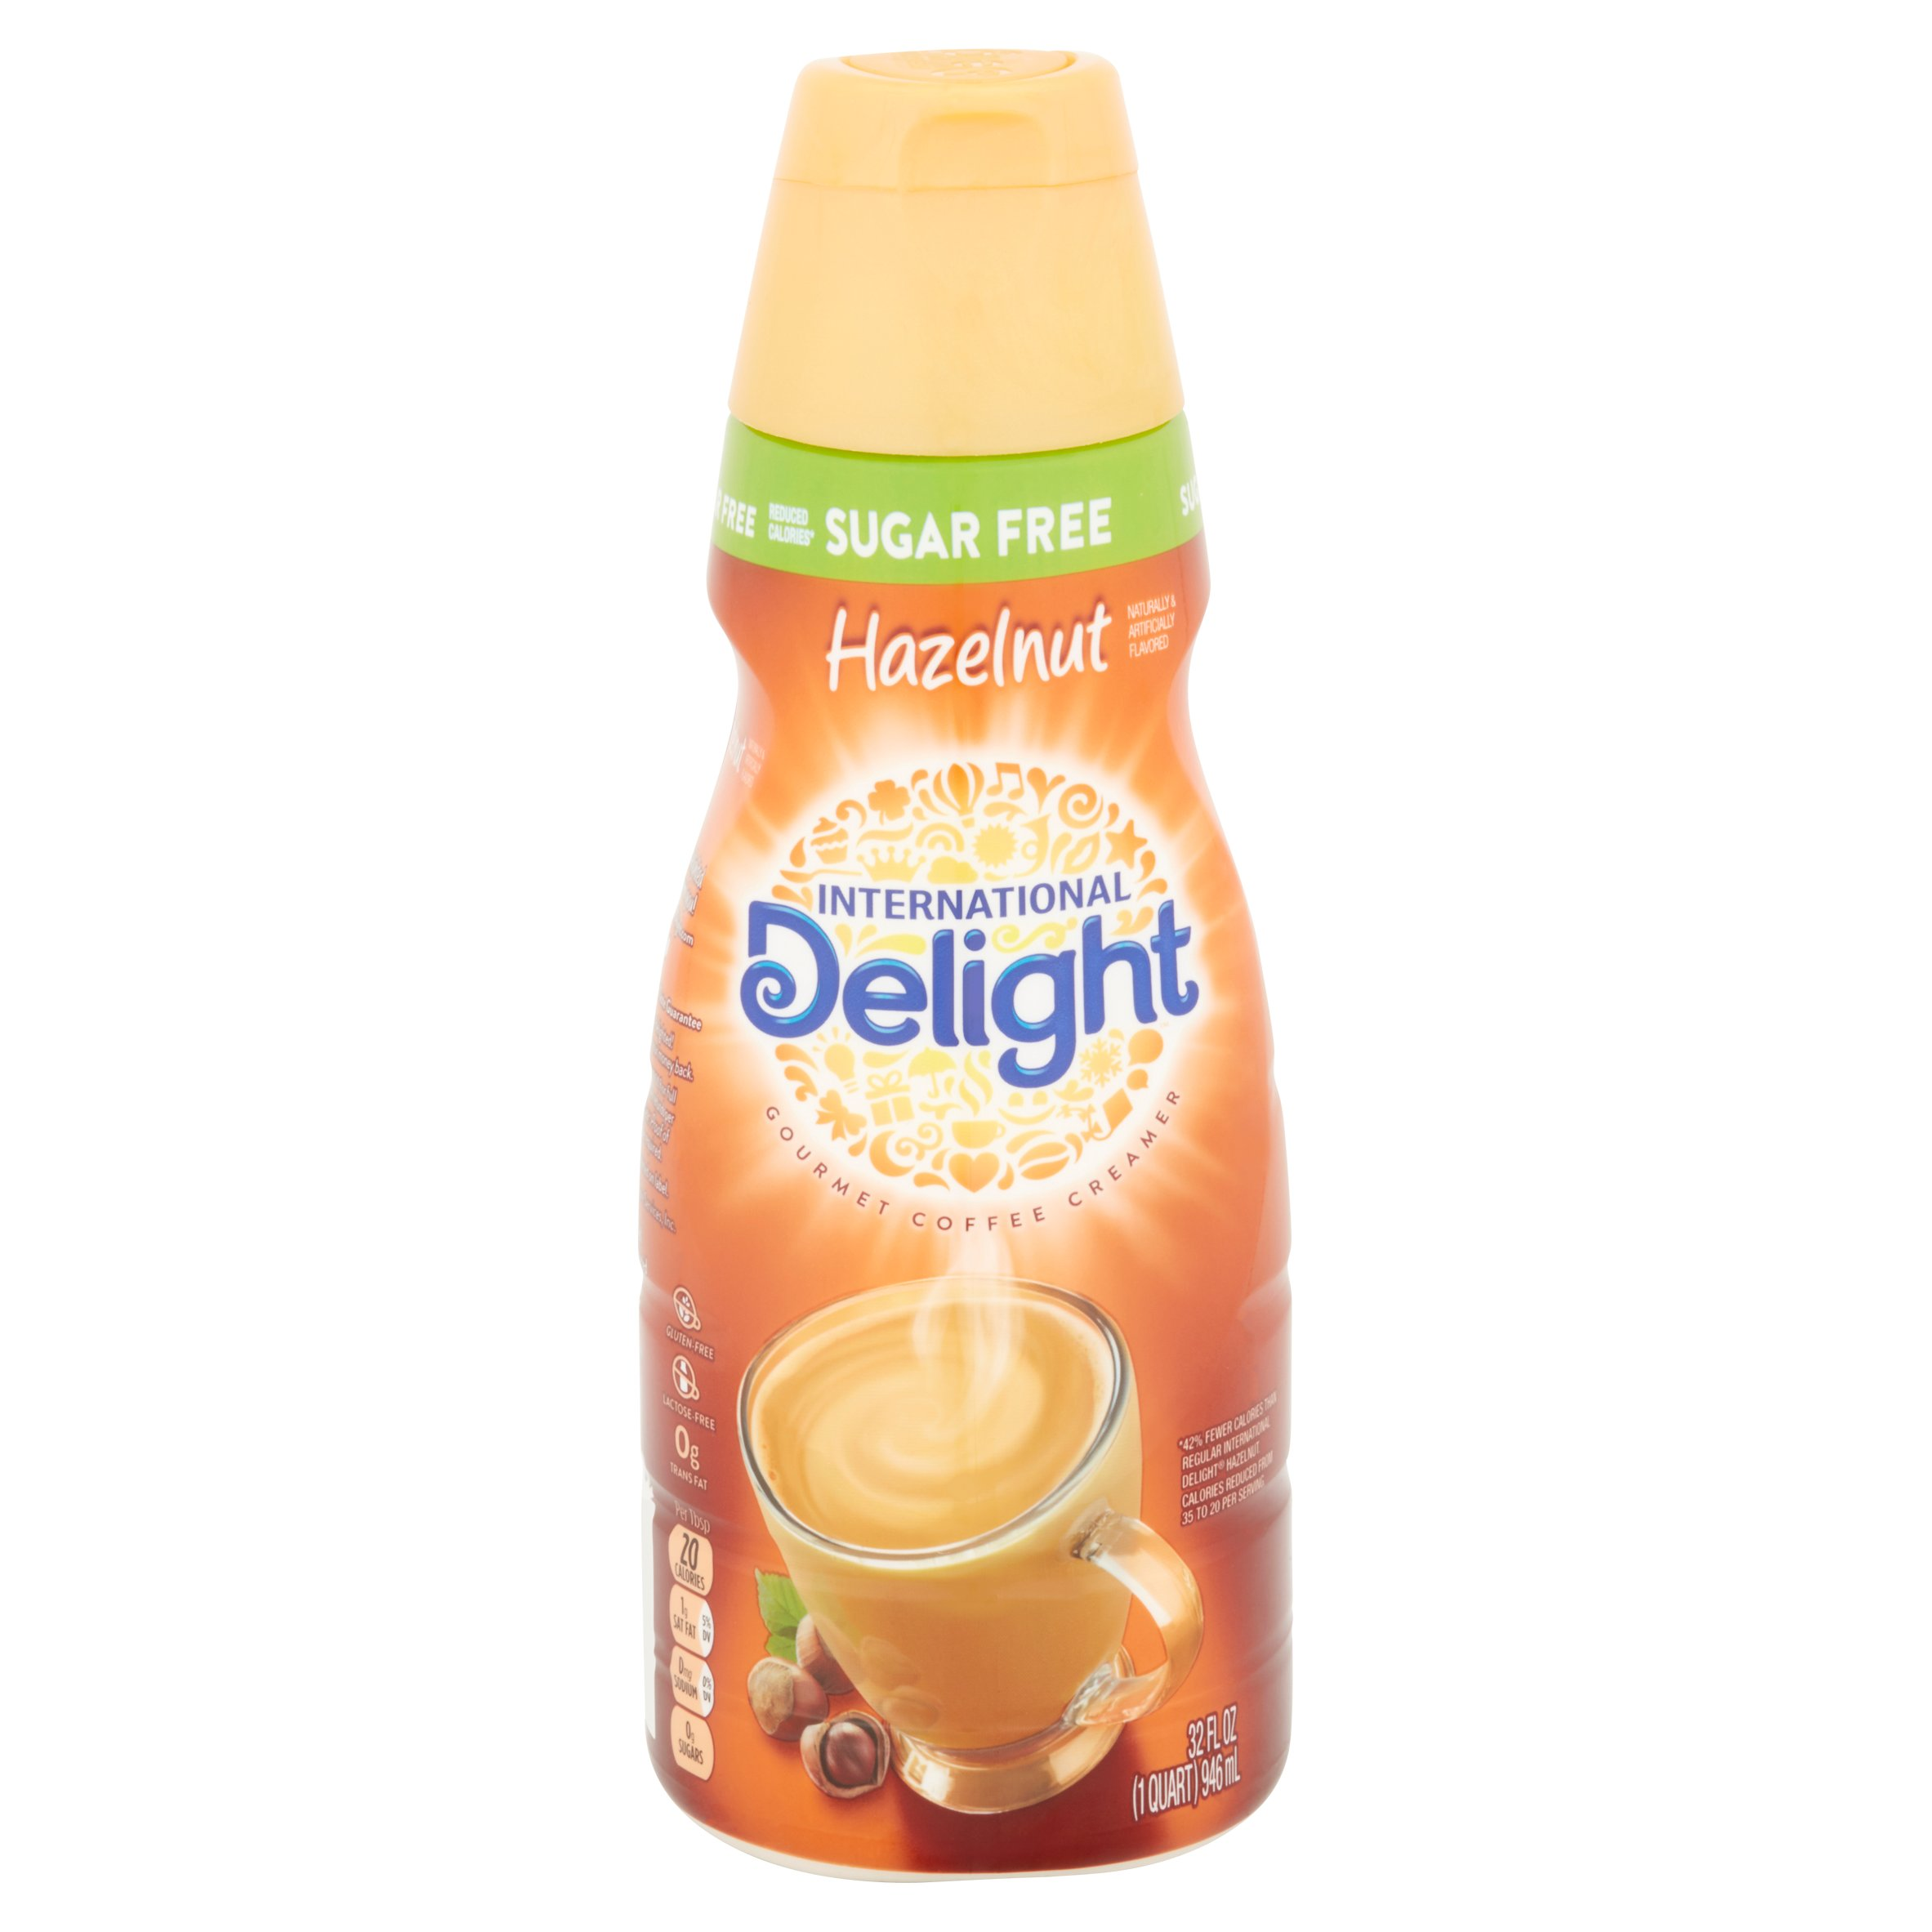 International Delight Hazelnut Coffee Creamer Nutrition Facts | Besto Blog